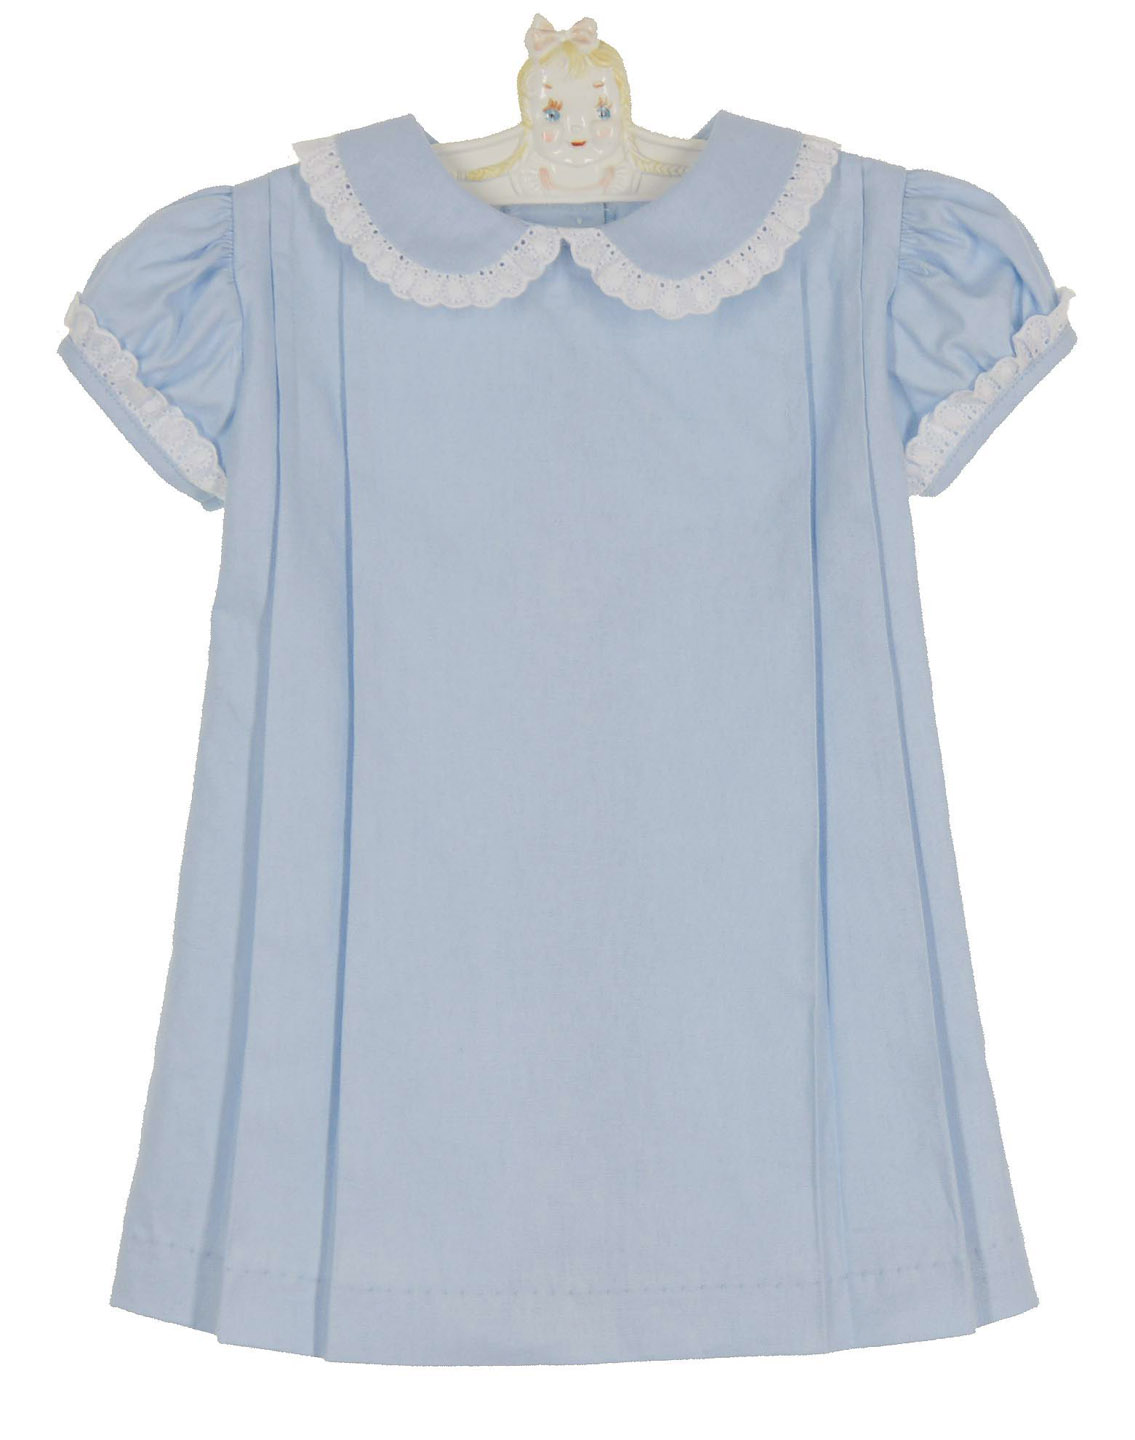 Anvi Kids blue linen pleated dress with white eyelet trim